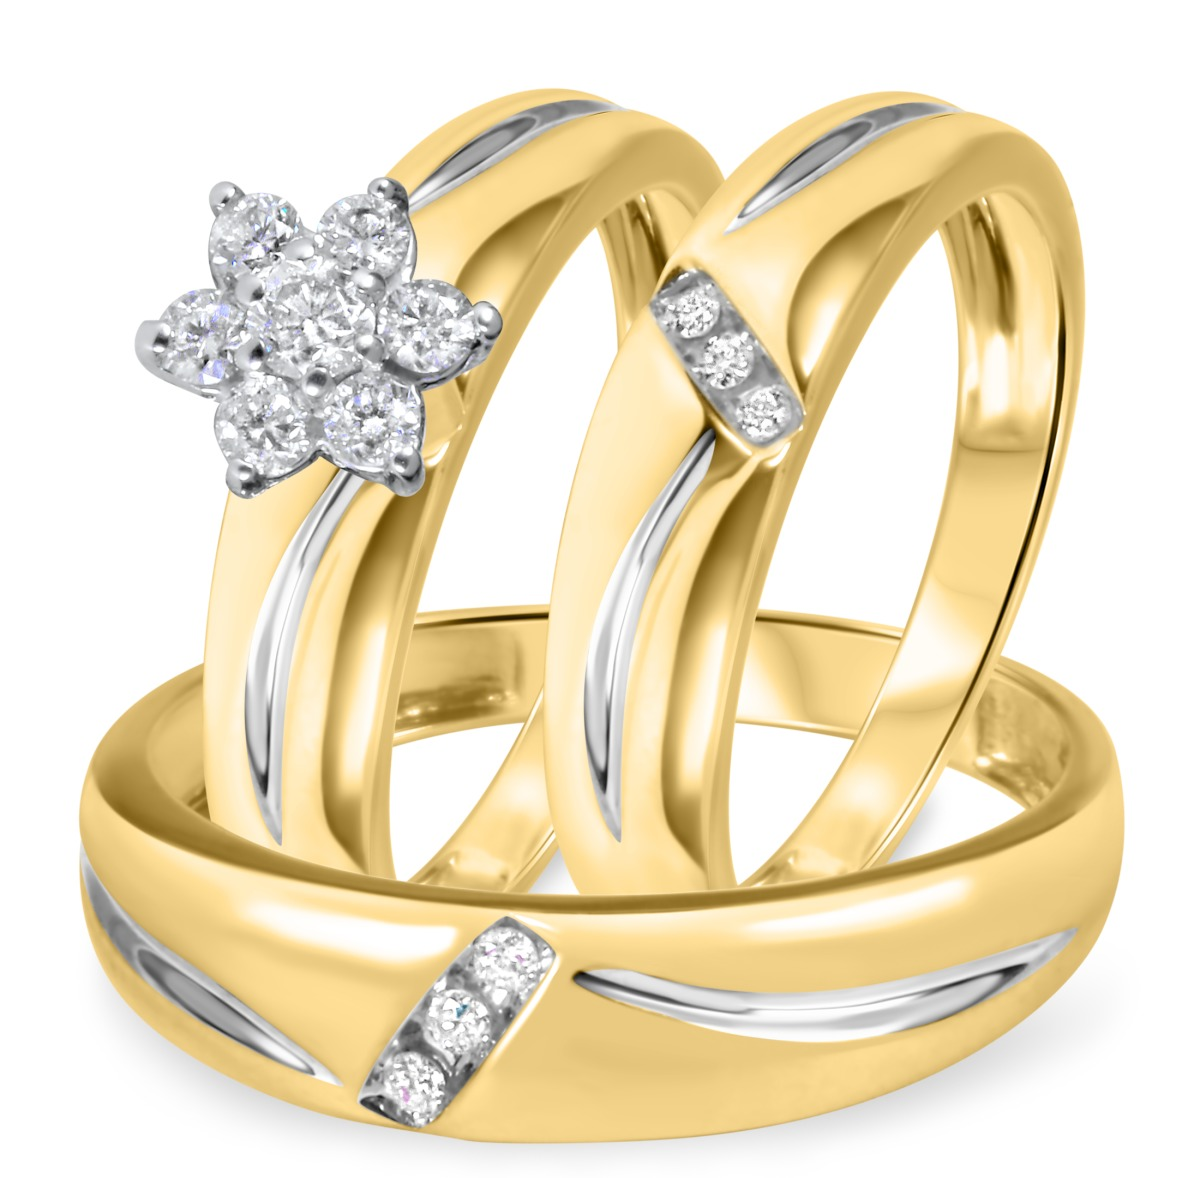 1/3 CT. T.W. Diamond Ladies Engagement Ring, Wedding Band, Men's Wedding Band Matching Set 10K Yellow Gold